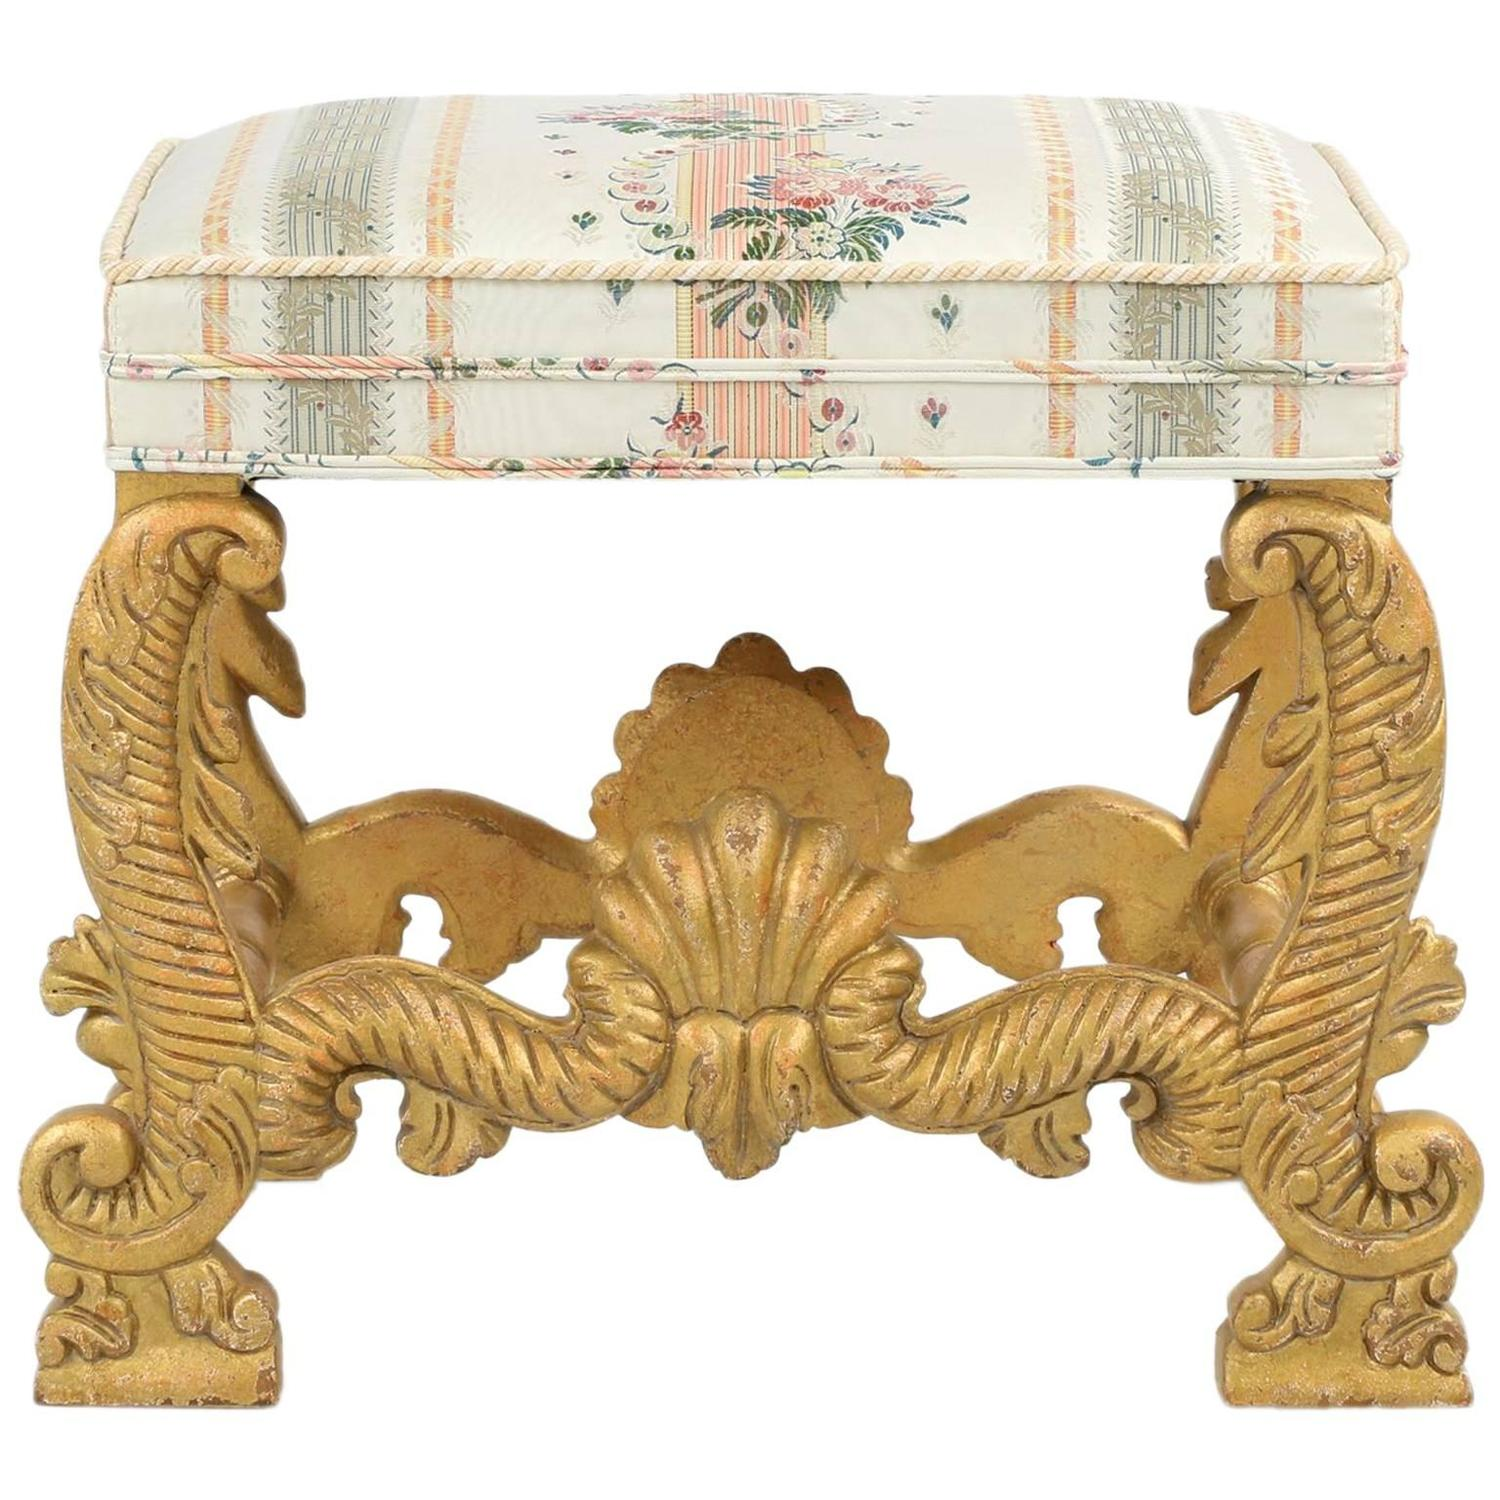 minton spidell chairs stannah chair lift cost empire style carved giltwood foot stool